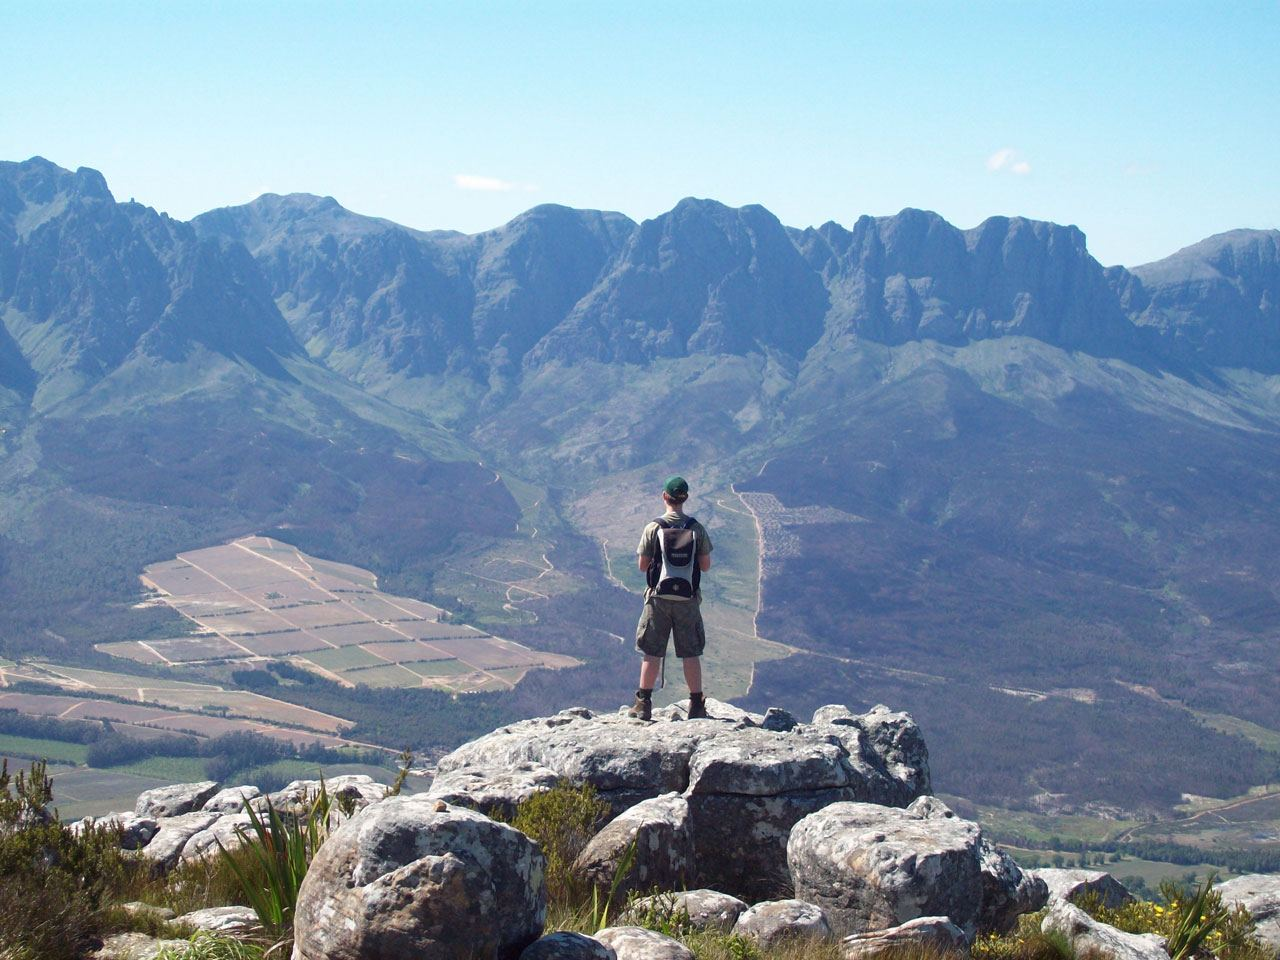 Helderberg Farm Hiking Trails - Stellenbosch